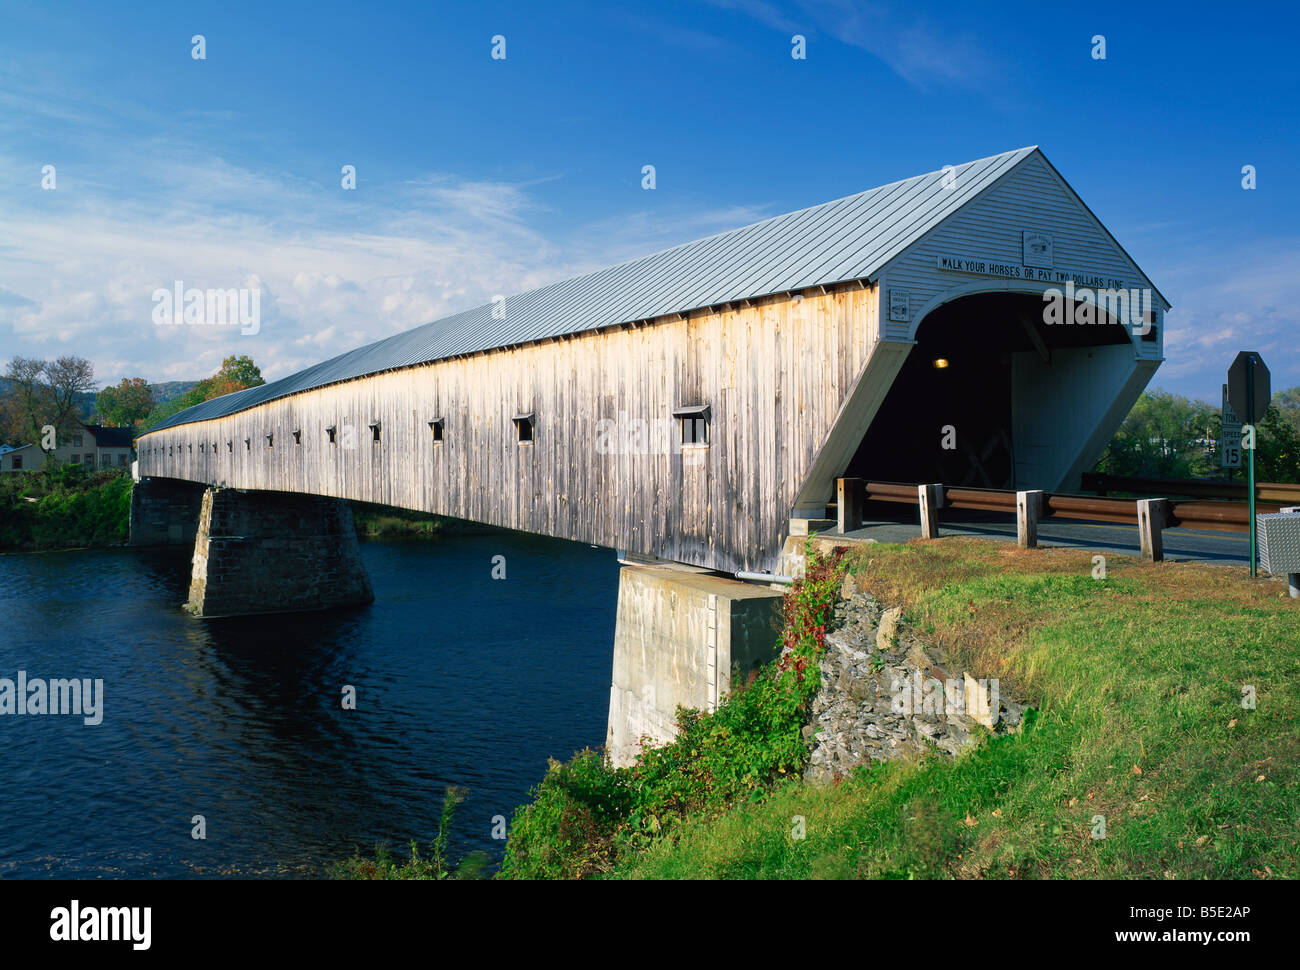 The Cornish Windsor Bridge The Longest Covered Bridge In The USA - Longest bridge in the usa